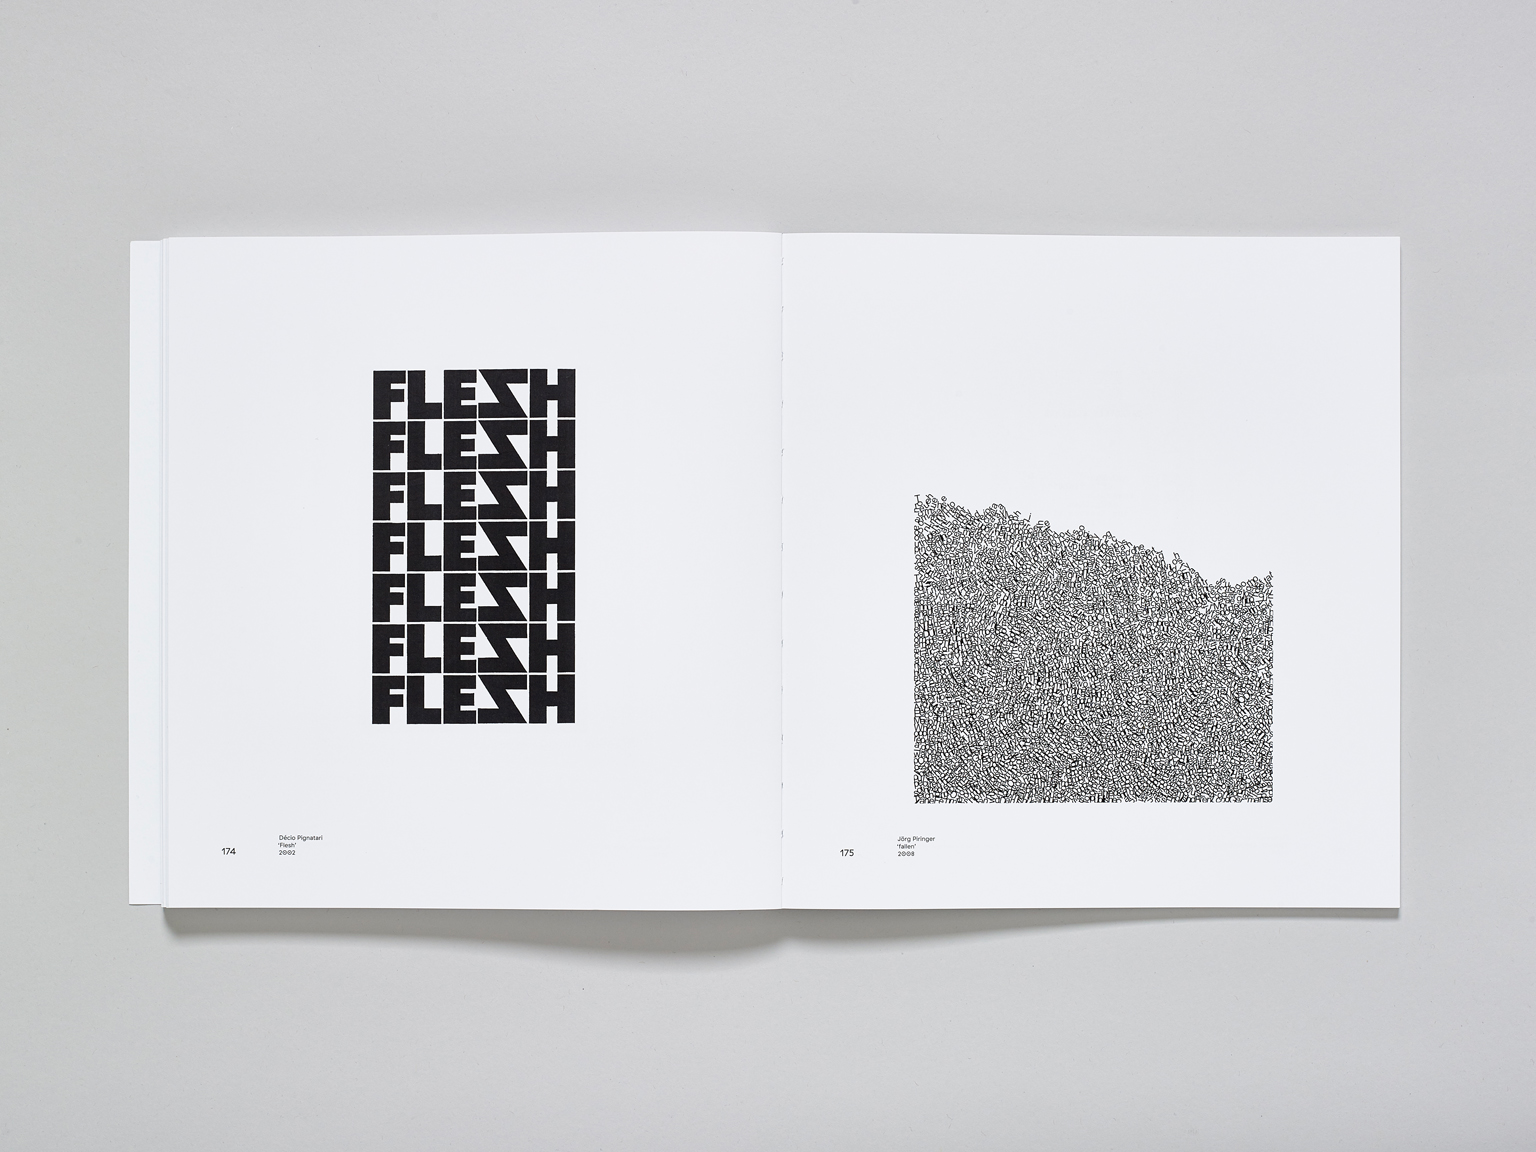 Spreads from The New Concrete: Visual Poetry in the 21st Century (Hayward Publishing) showing work by Decio Pignatari (2002) and Jorg Piringer (2008)